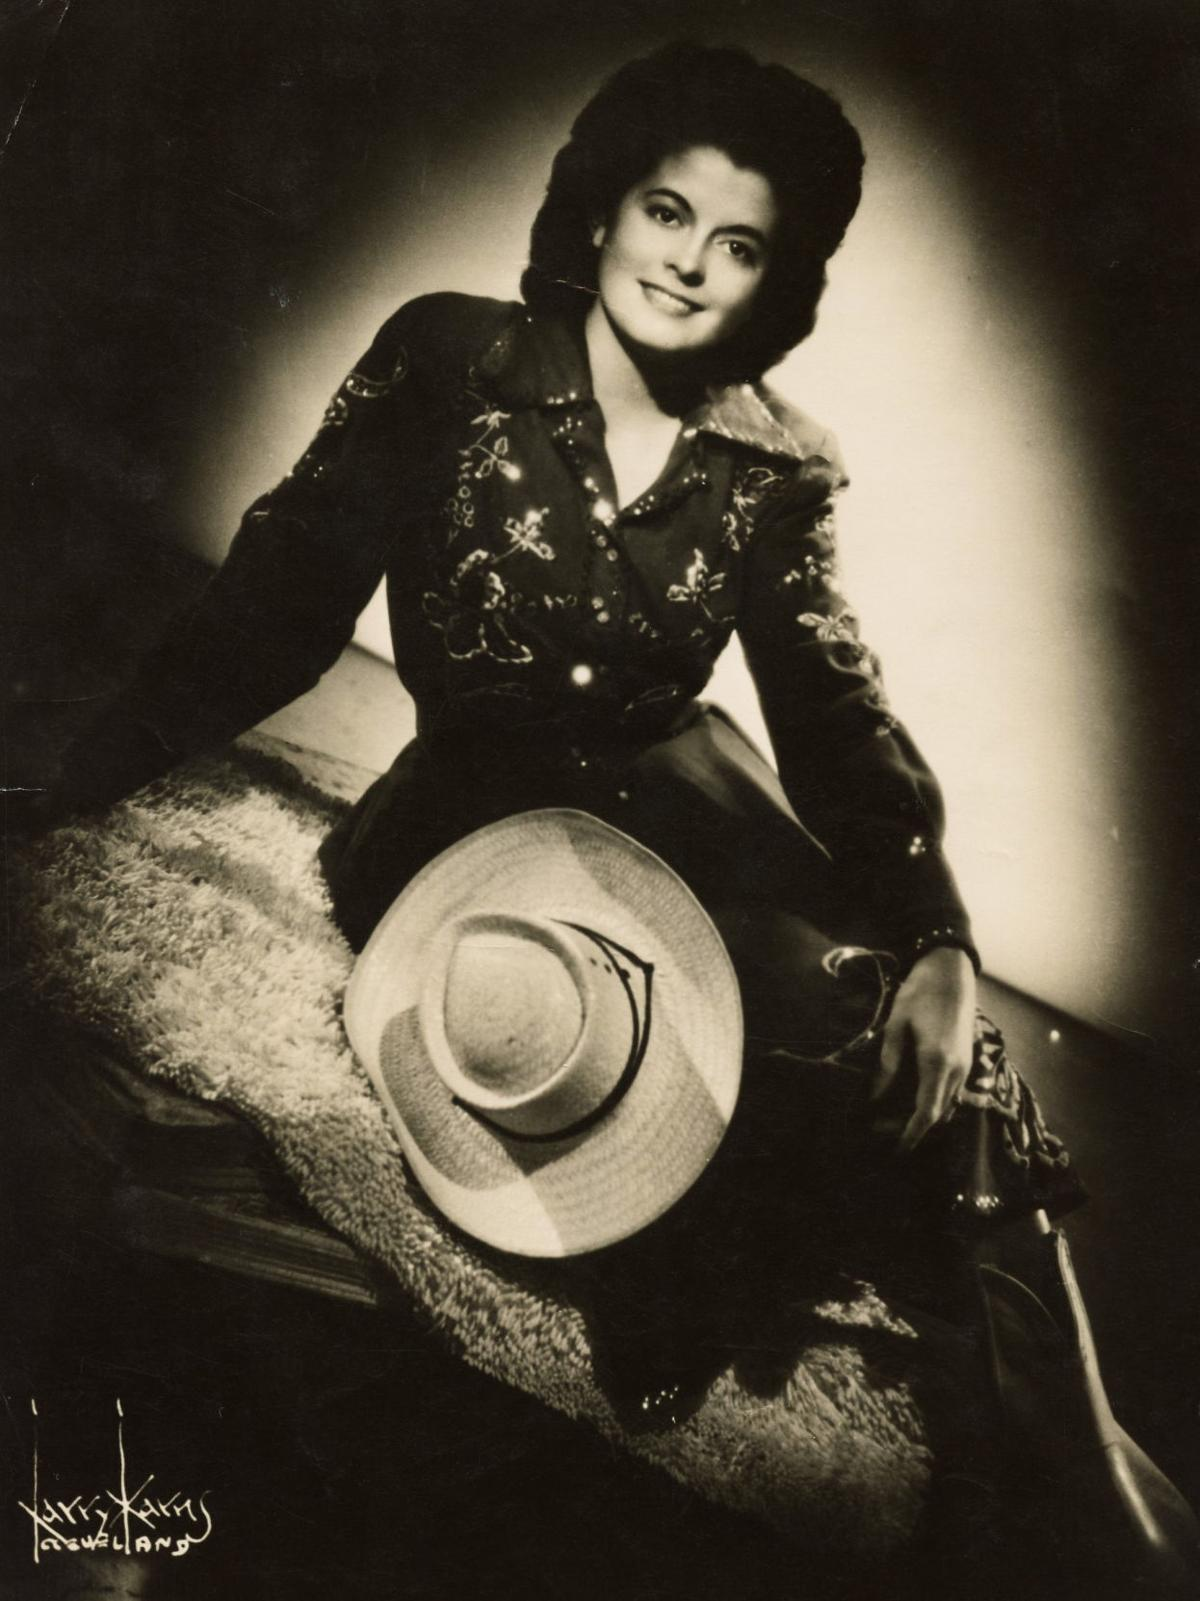 Country music singer Chickie Williams